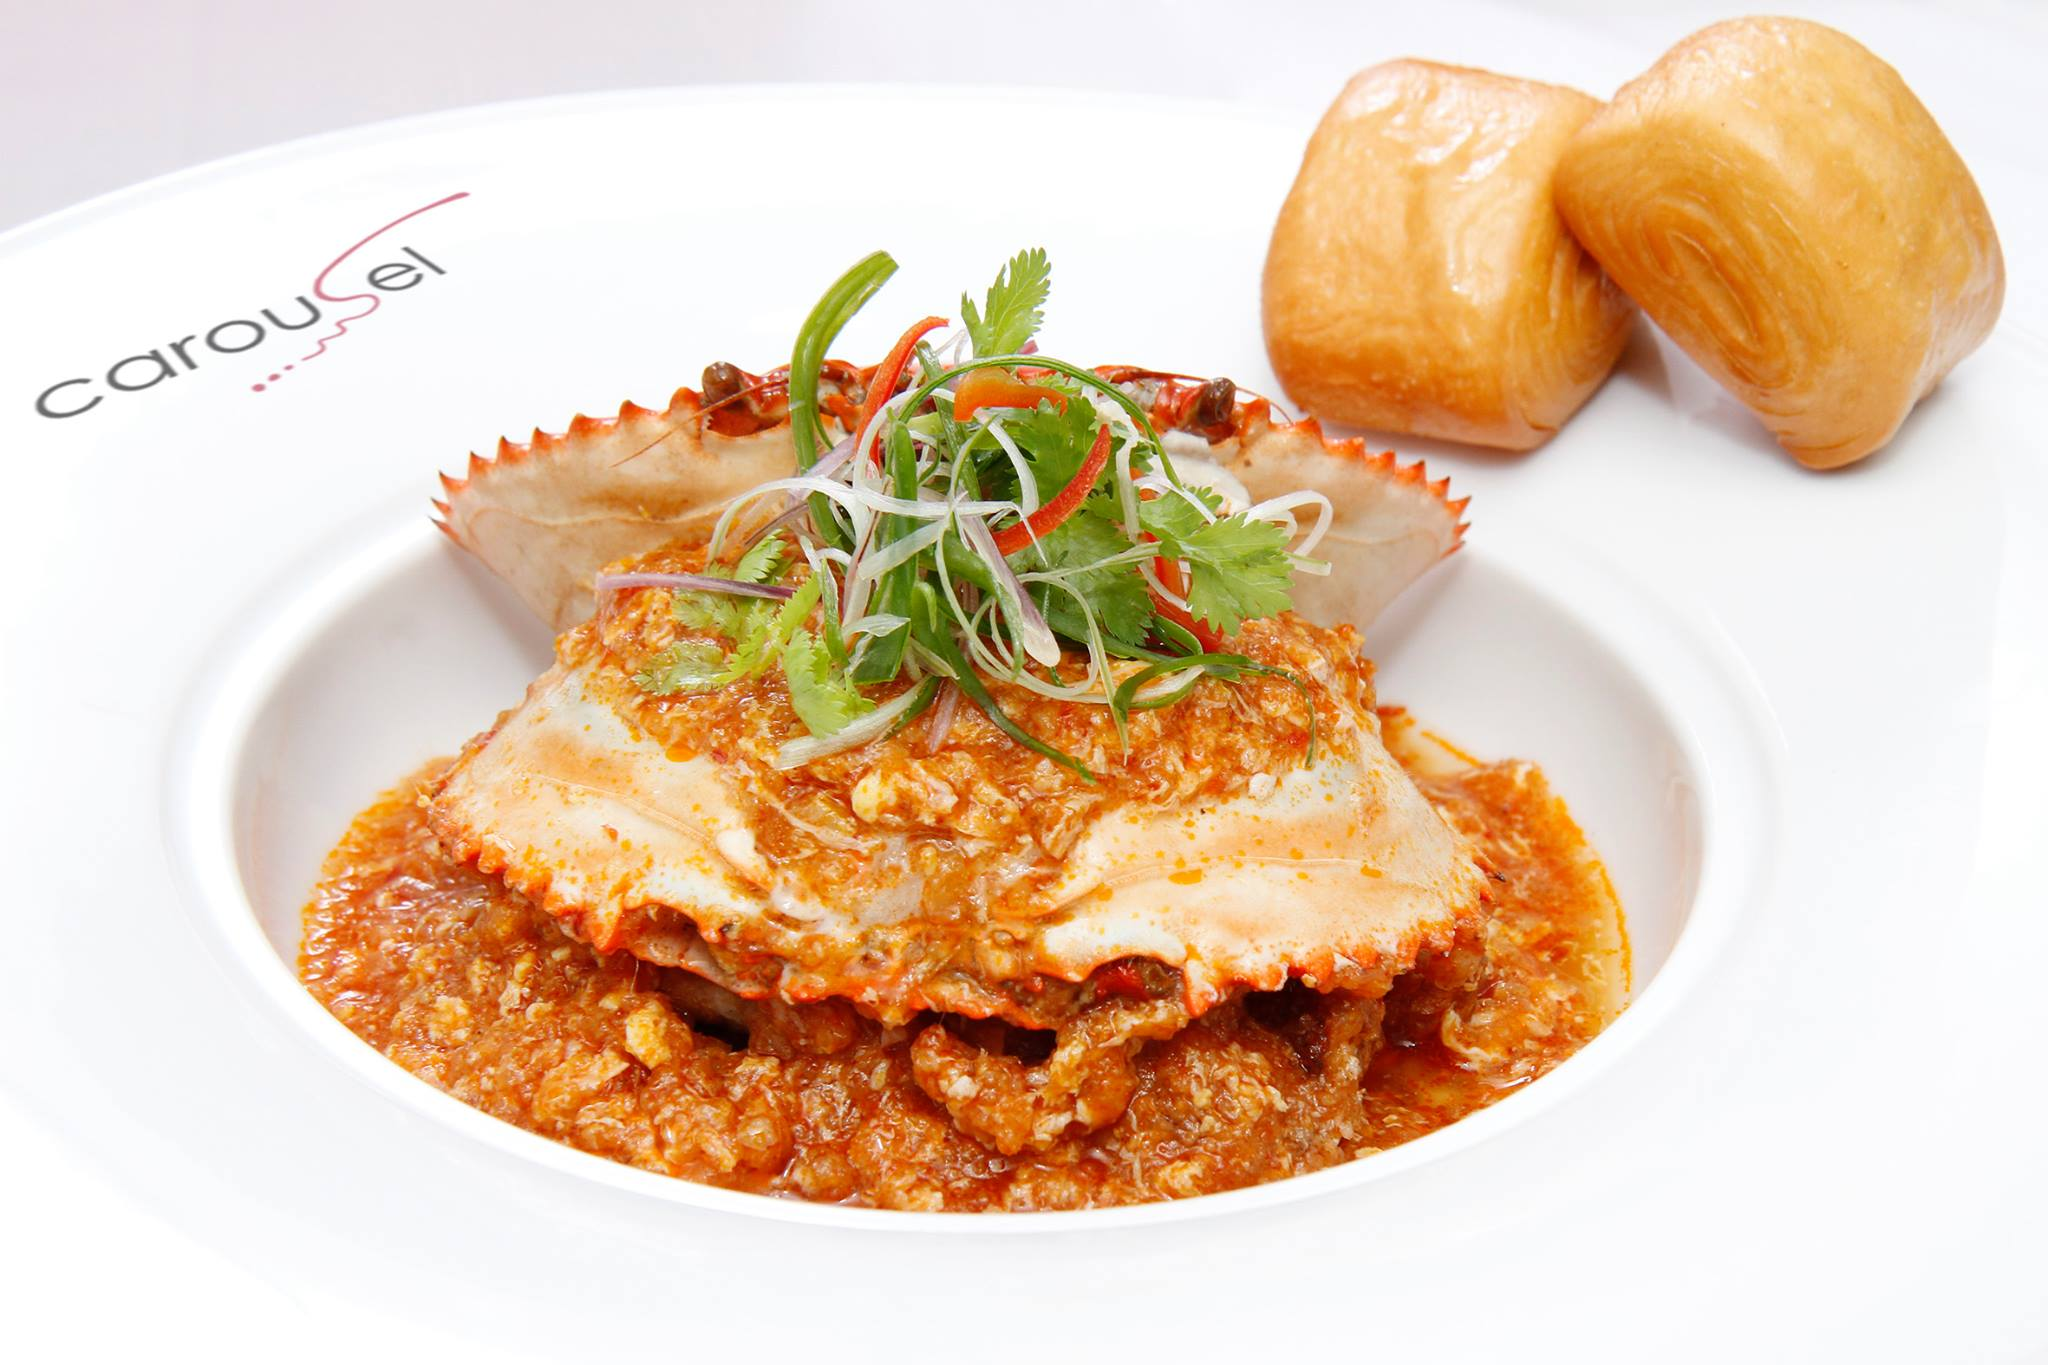 The Line at Shangri-La and Carousel at Royal Plaza on Scotts Join in Singapore Food Festival 2015 - Alvinology